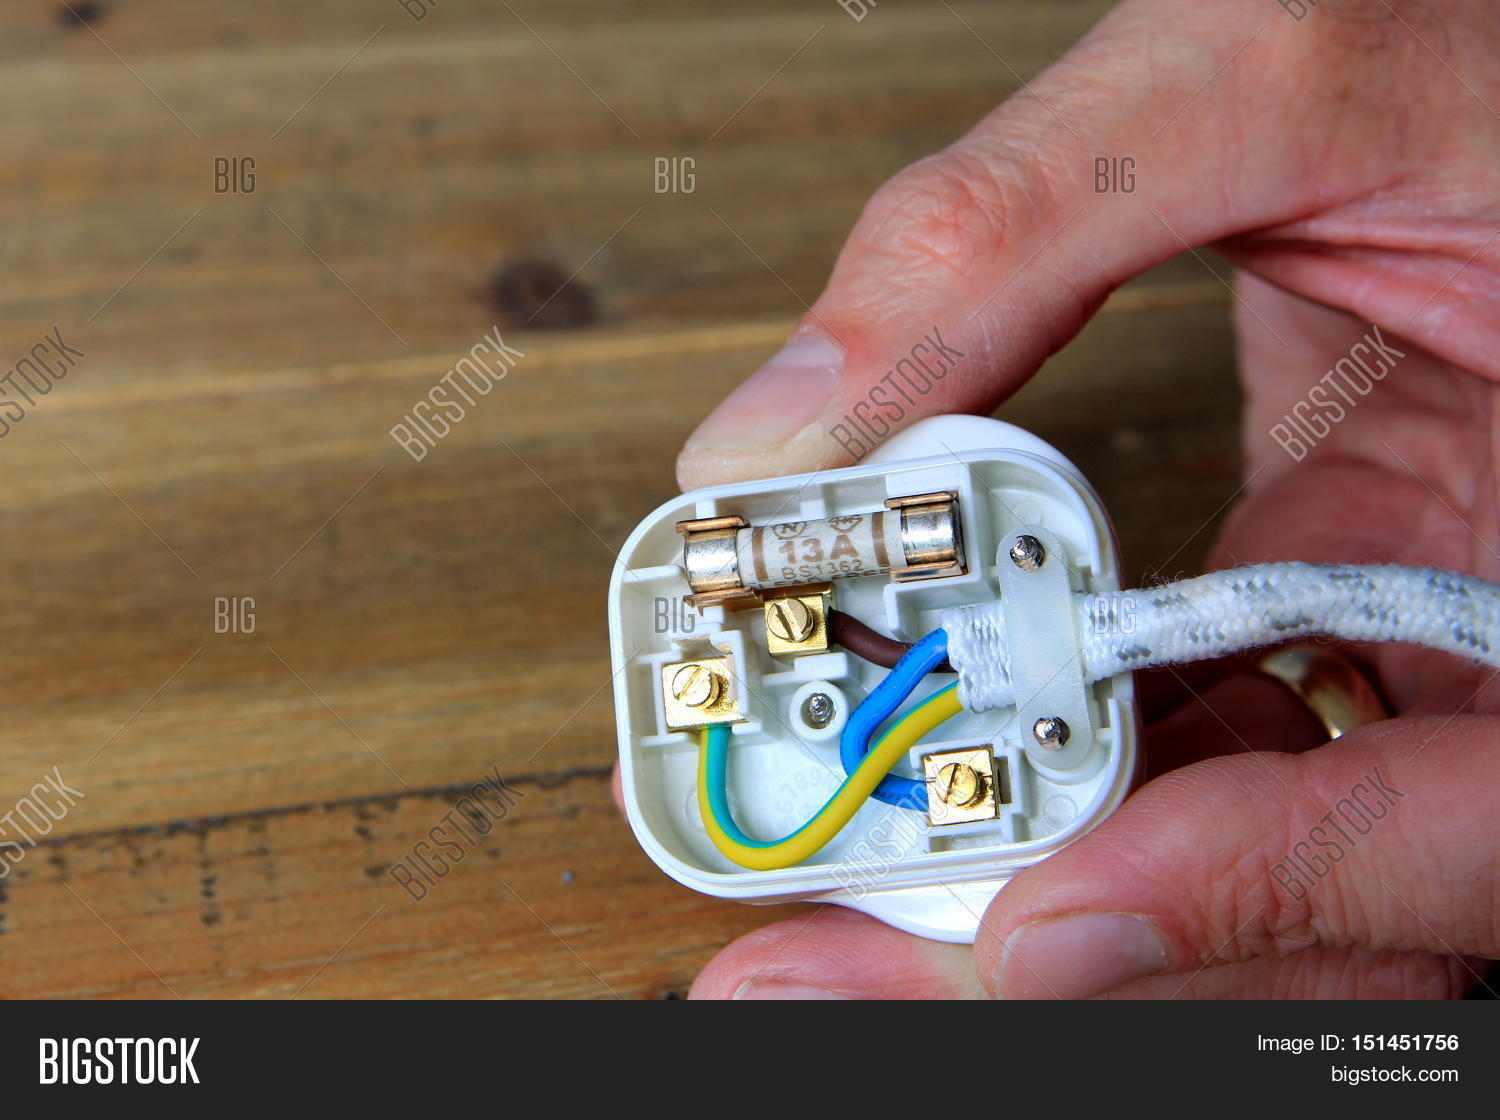 Uk 13 Amp Plug Back Image Photo Free Trial Bigstock Wiring Electrical Plugs With Taken Off To Change The Fuse